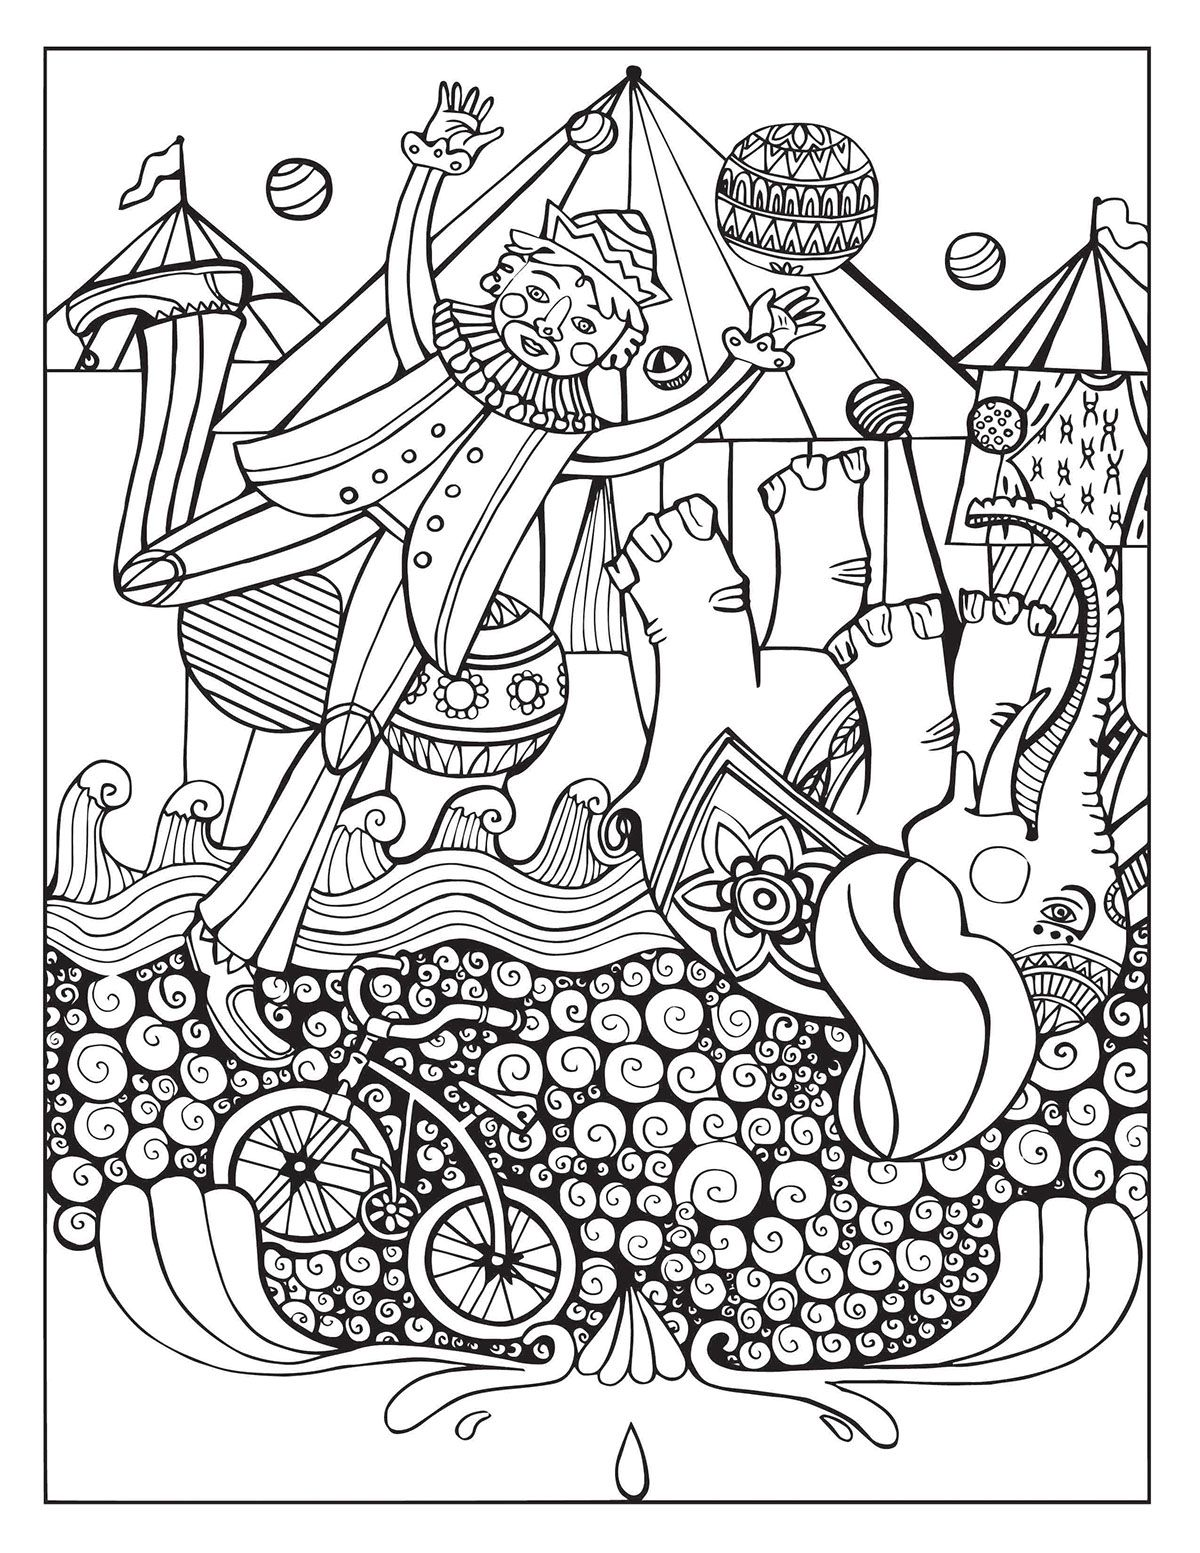 A Day At The Circus Coloring Page On Behance Coloring Pages Coloring Books Coloring Pages Inspirational